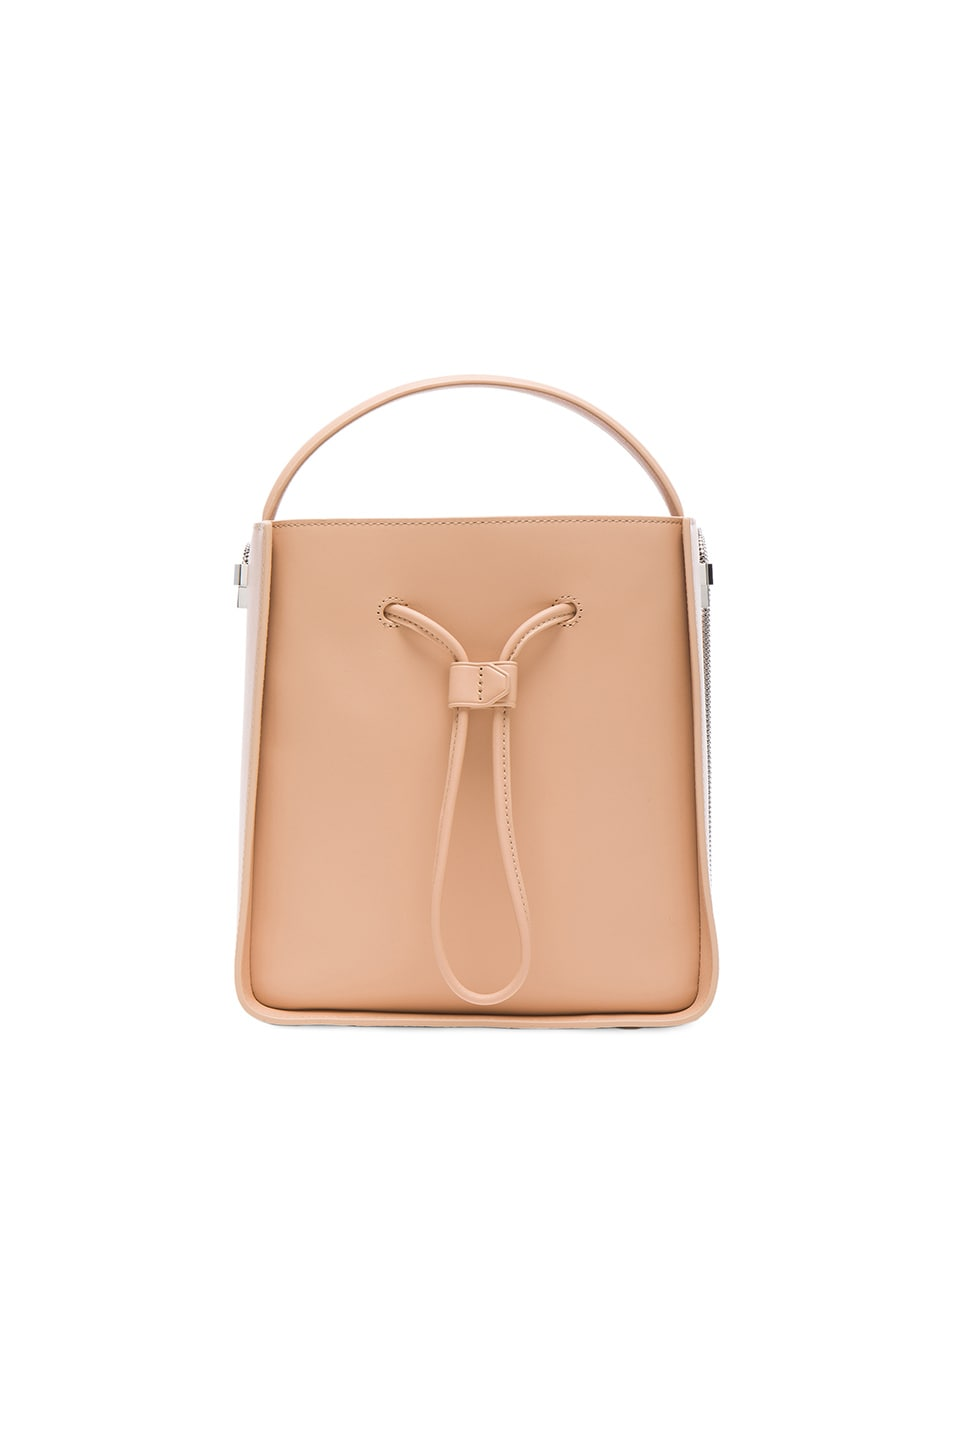 Image 1 of 3.1 phillip lim Soleil Small Bucket Bag in Alabaster